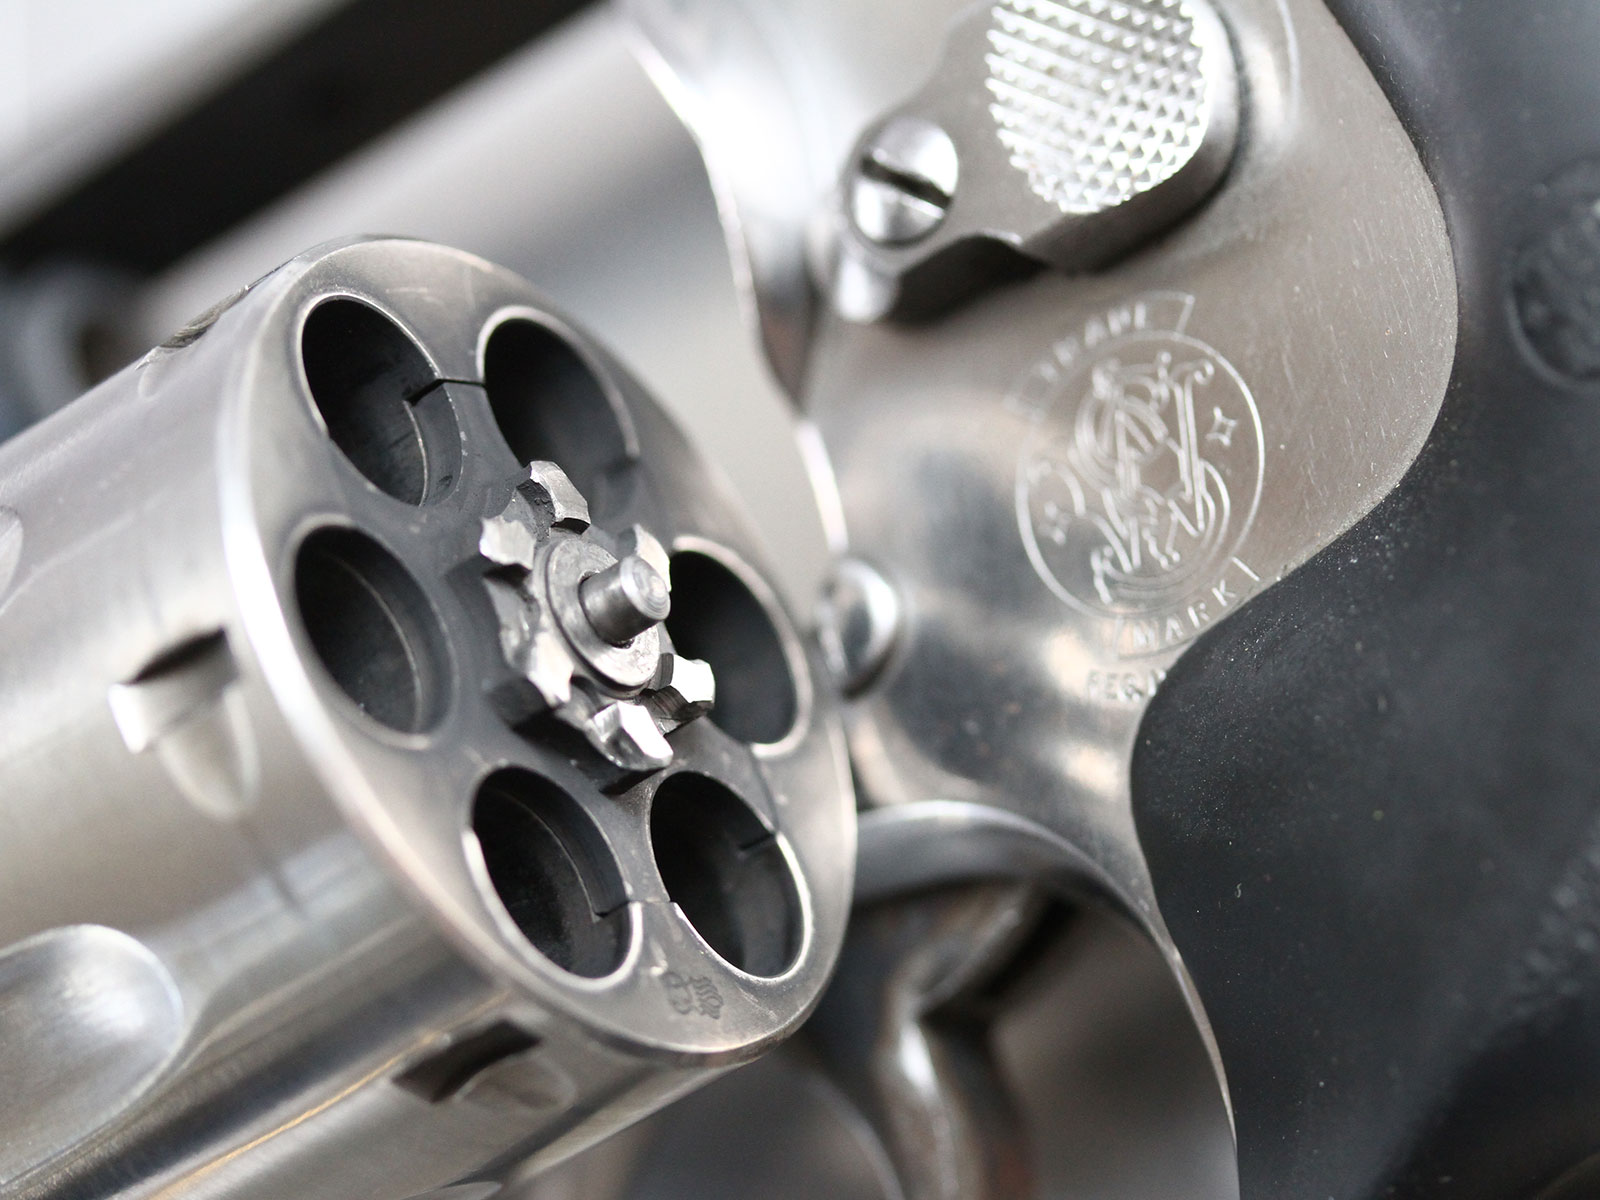 SH_Web_Wir_Waffen_Smith-Wesson-Revolver-2_1800x1200